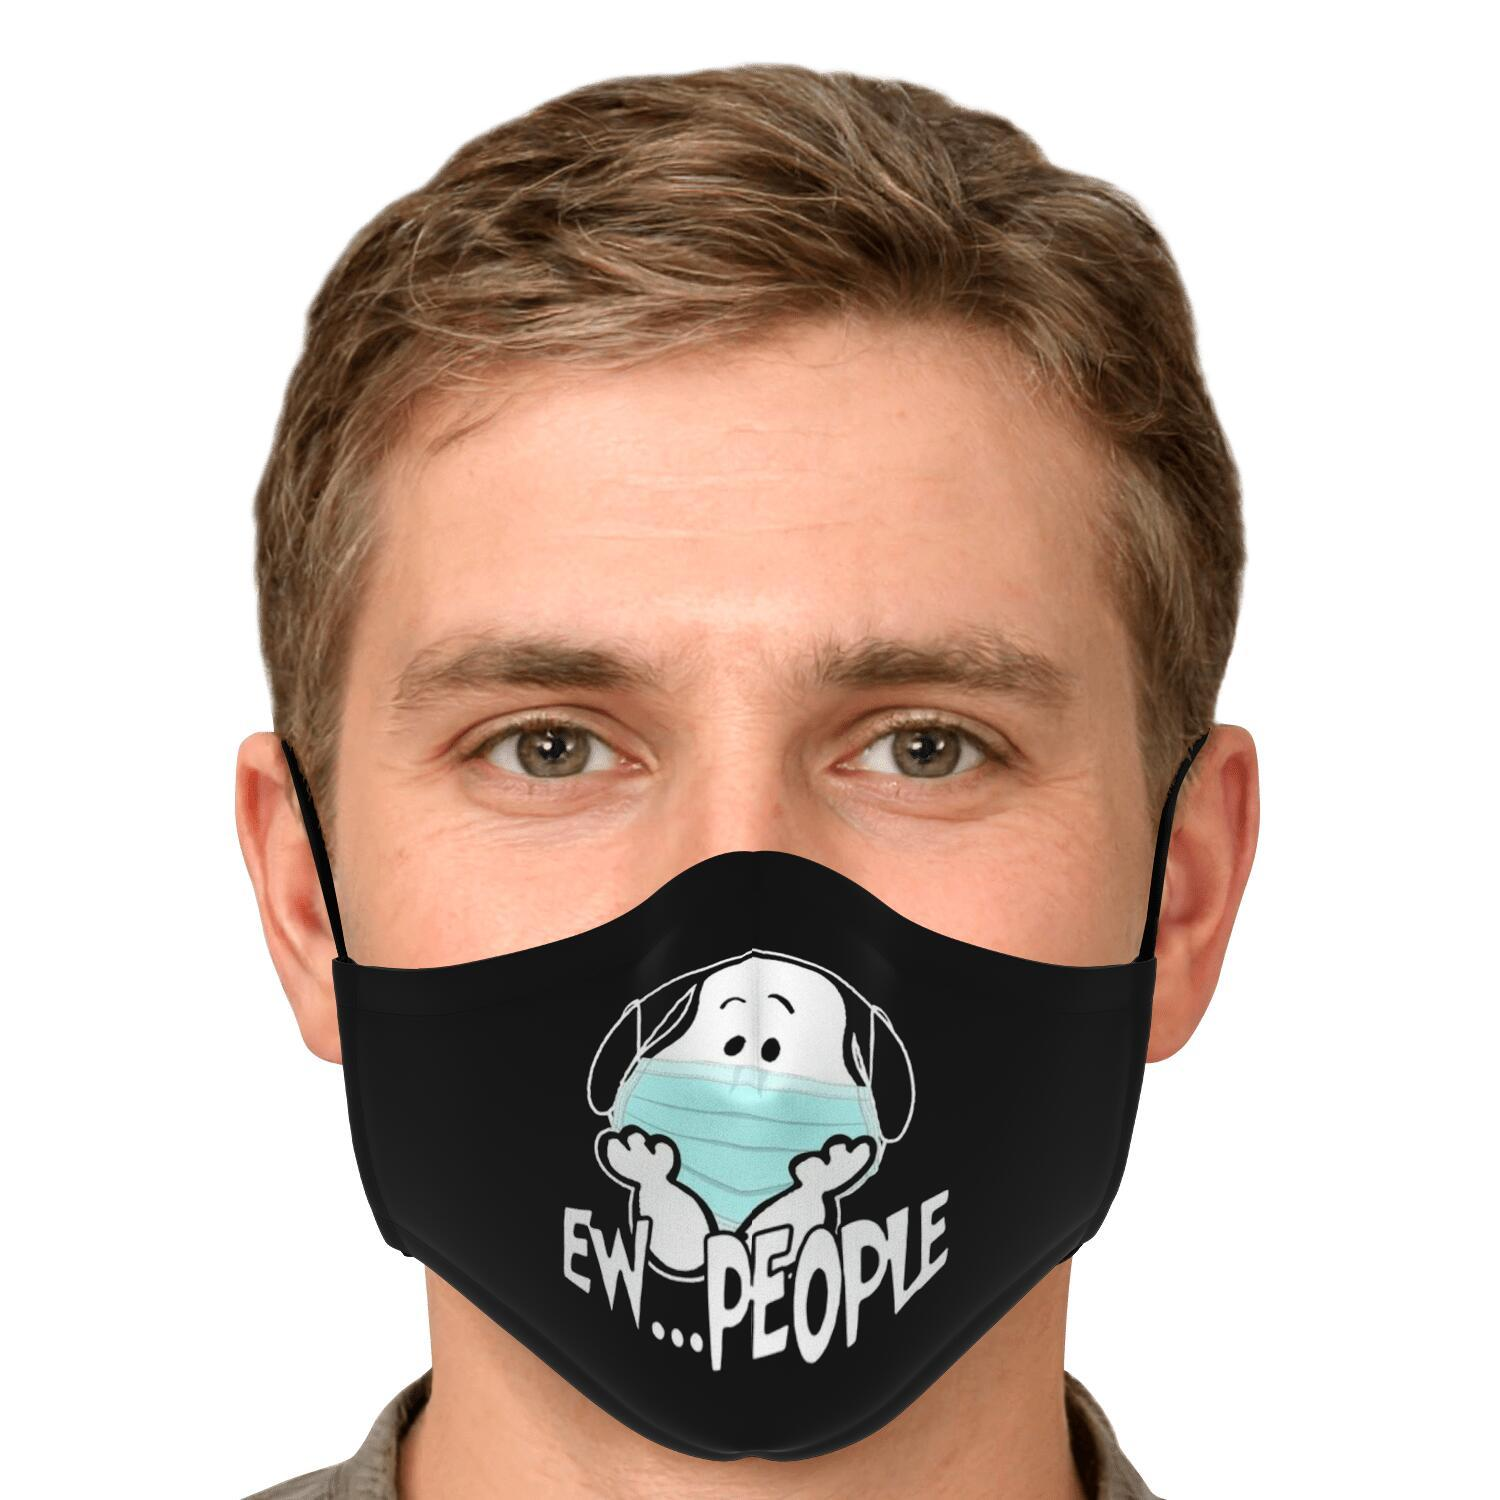 Ew People Snoopy Face Mask 4